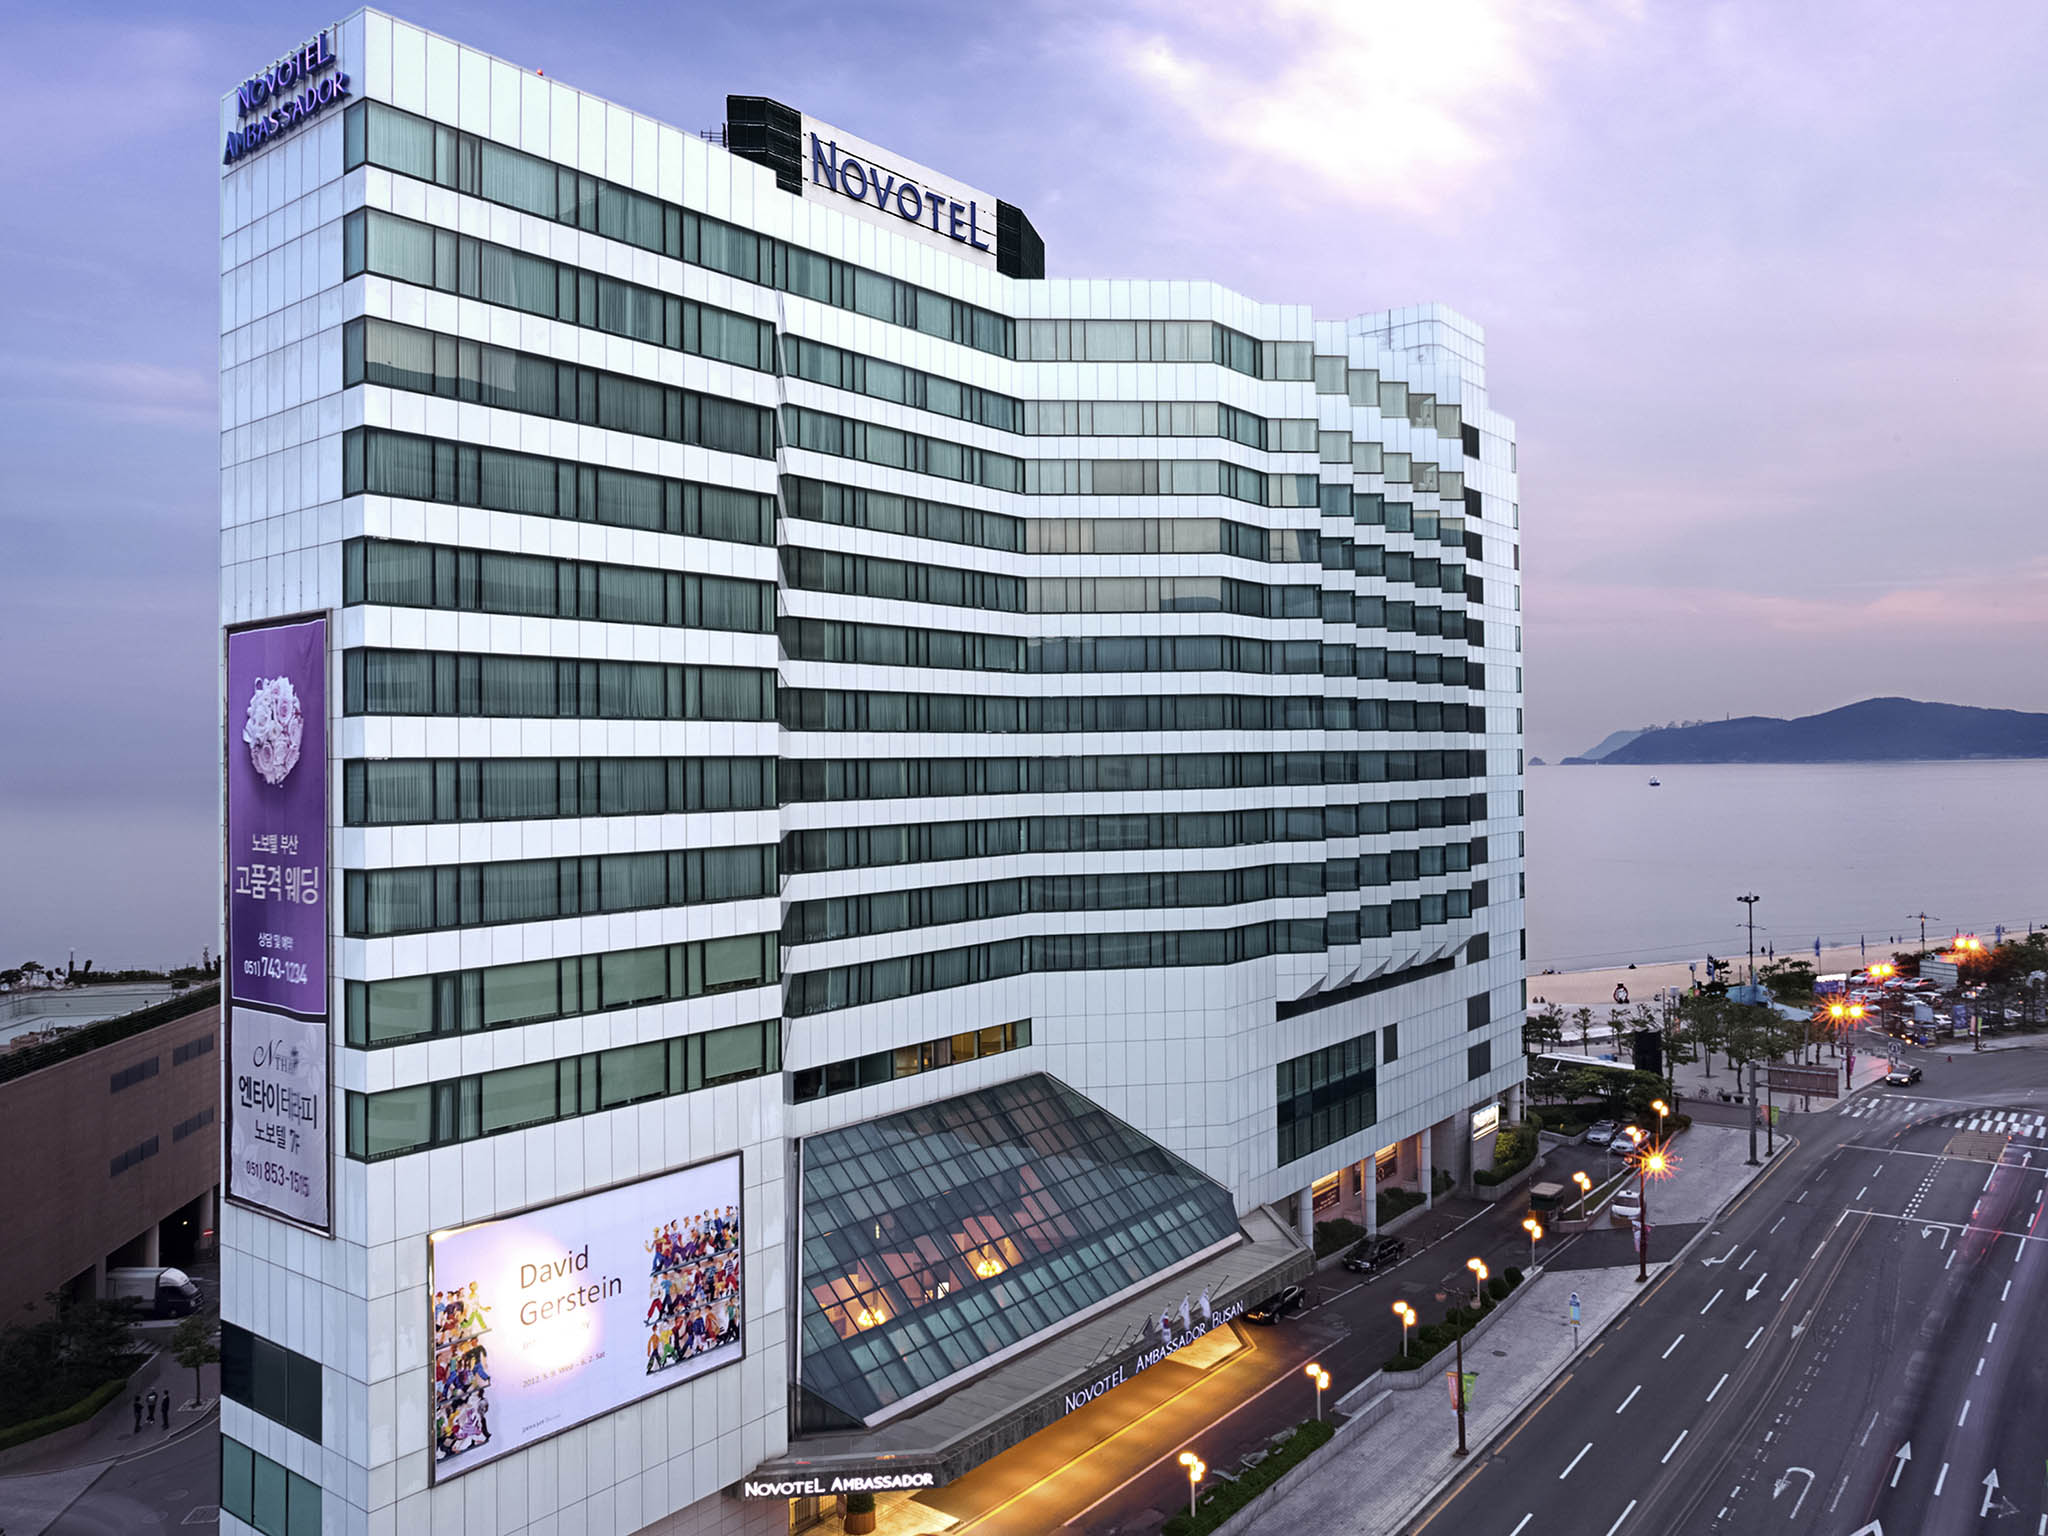 Busan luxury hotels 2018 world 39 s best hotels for Boutique hotel ytt nampo